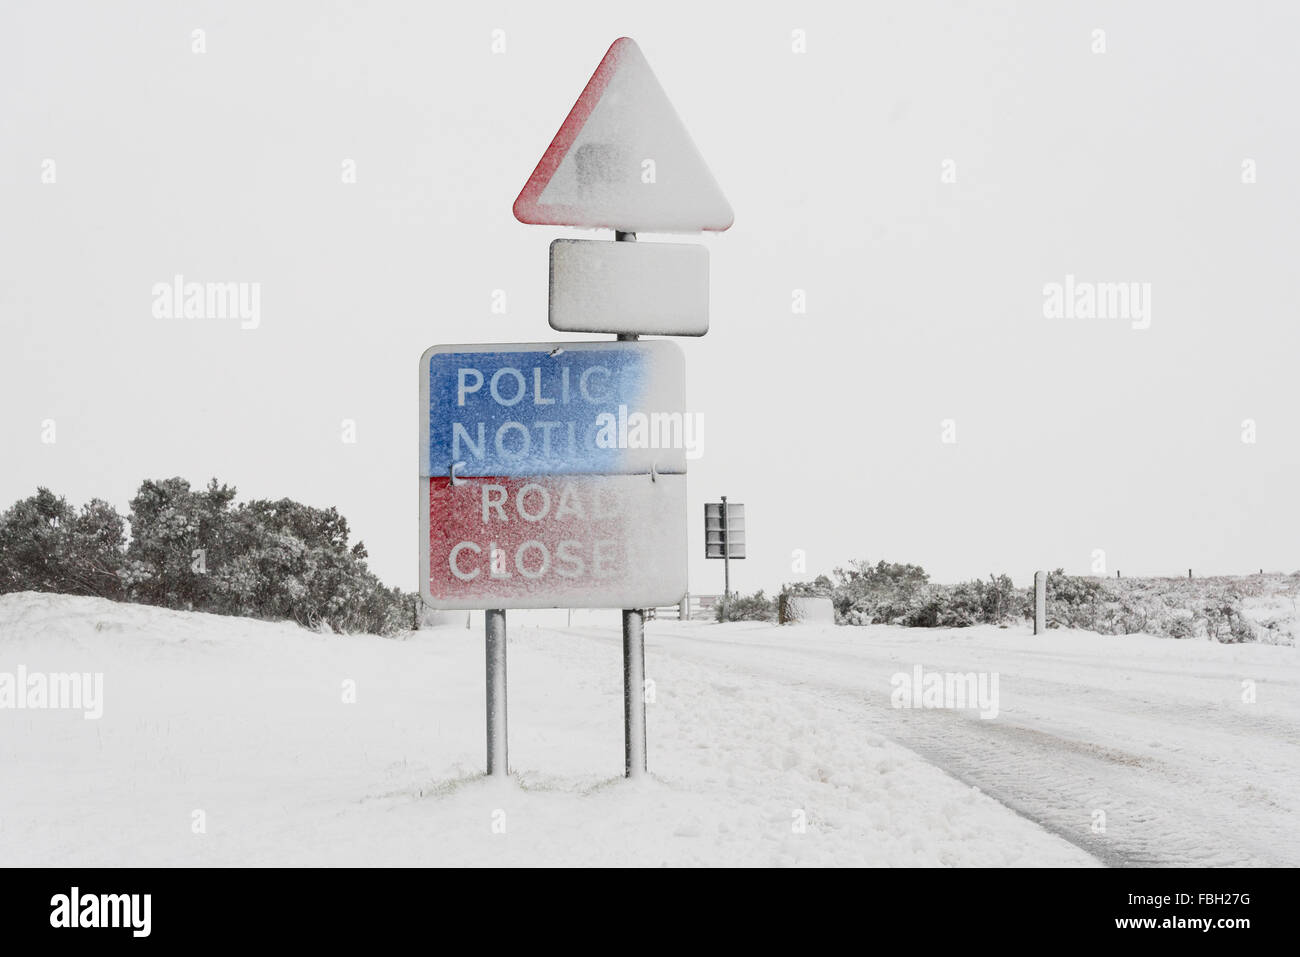 North Yorkshire, United Kingdom .14th January 2016. Heavy snow closes a rural road causing traffic disruption. Stock Photo